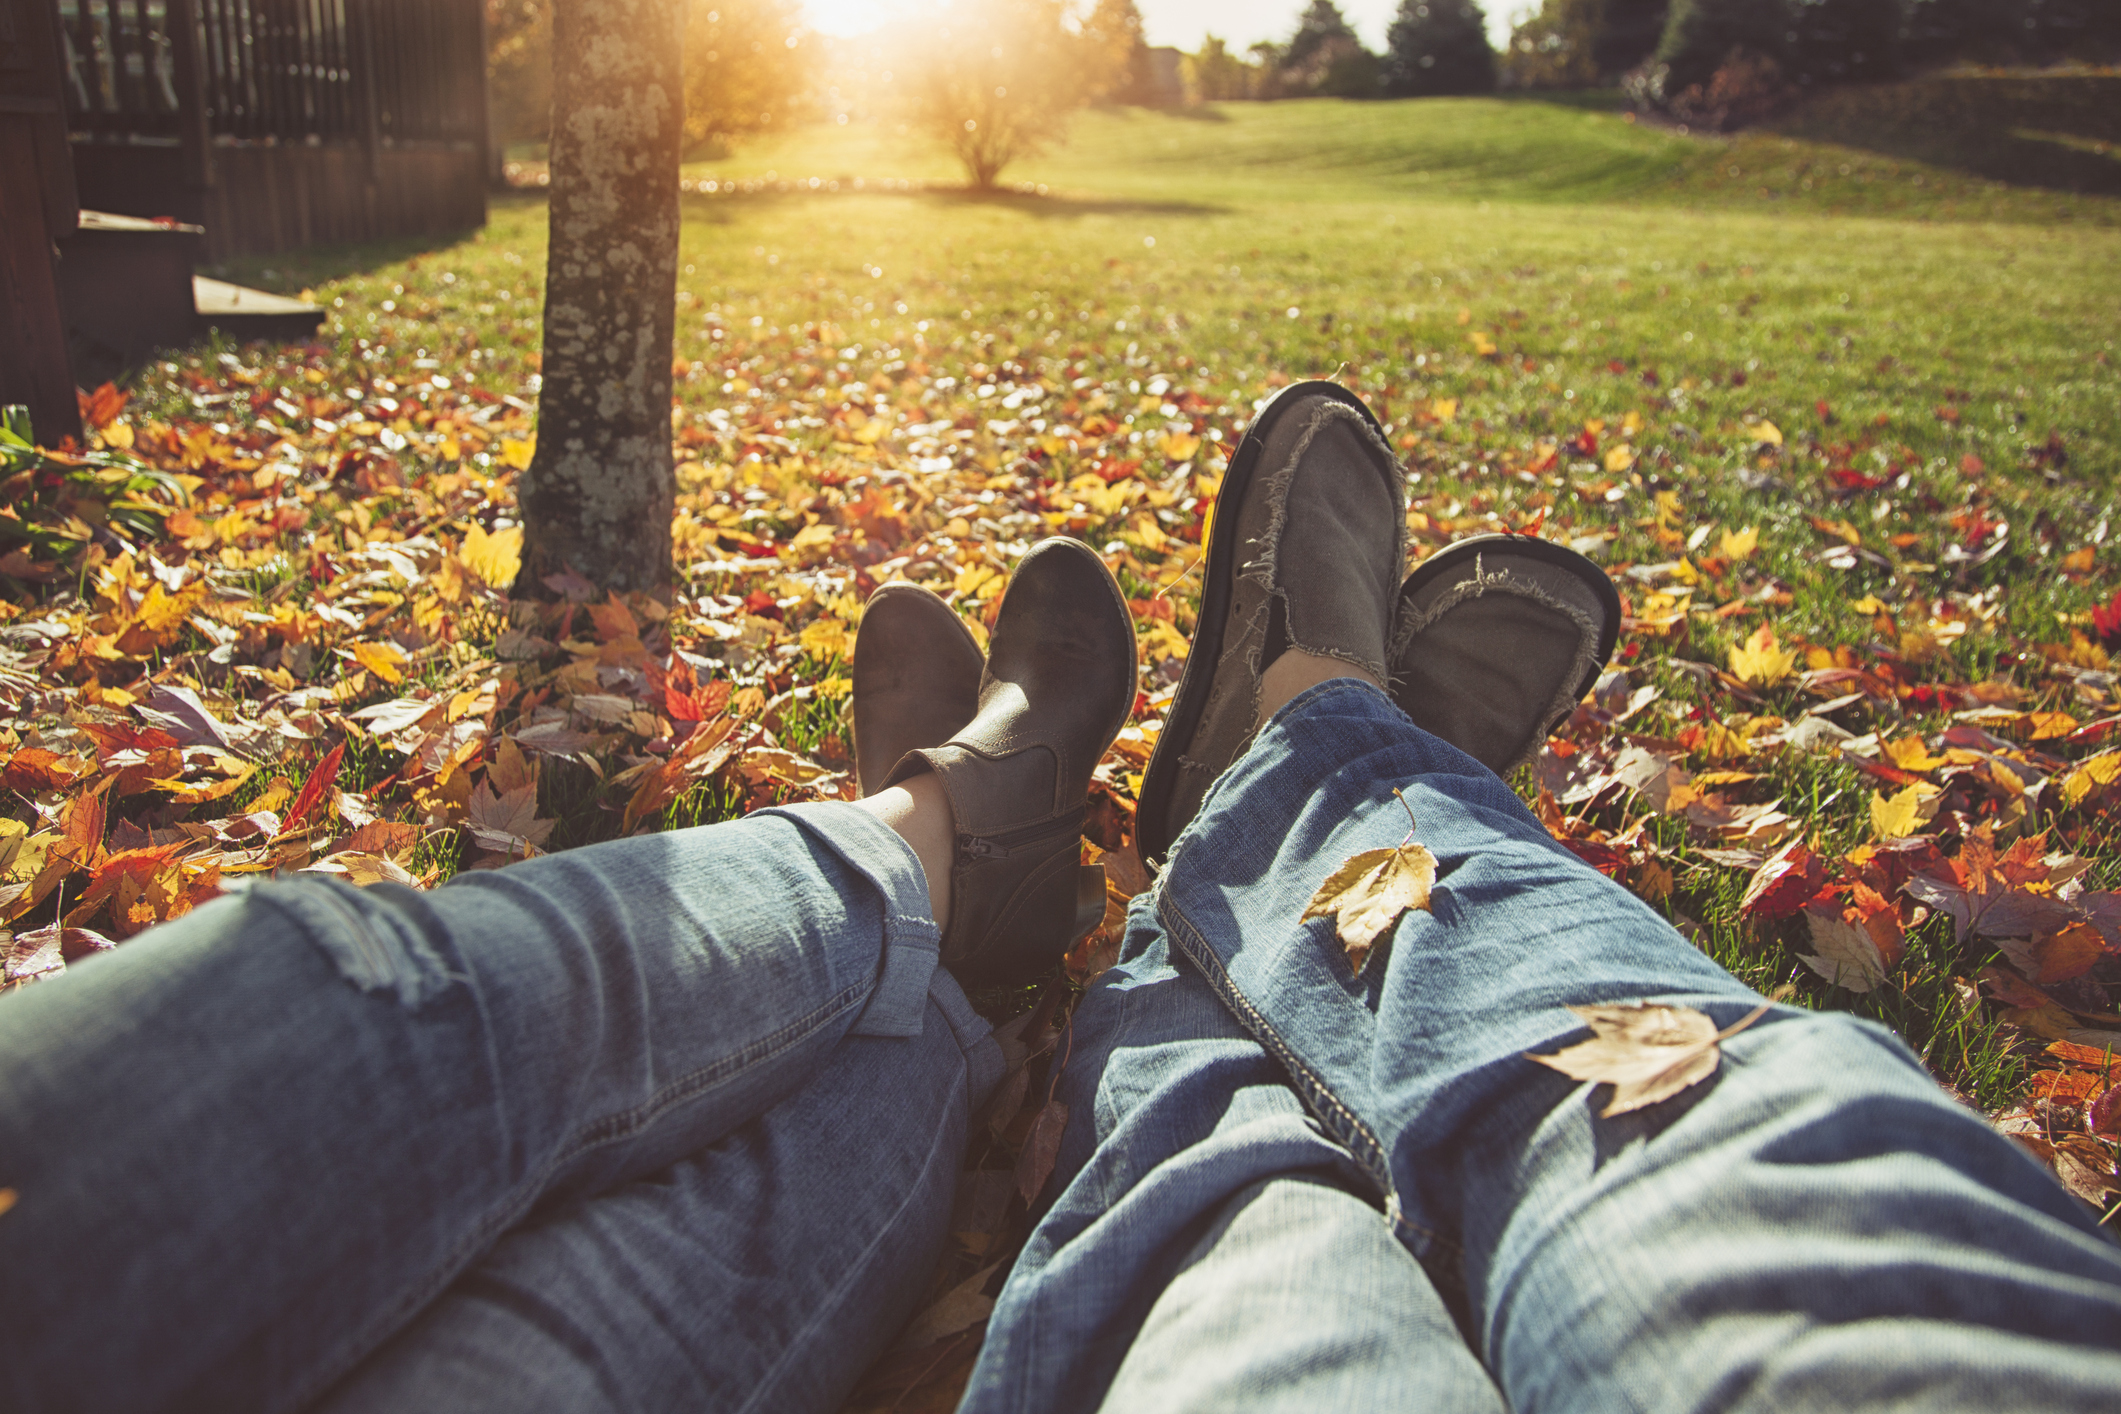 legs and feet of a couple lying side by side in leaf strewn grass